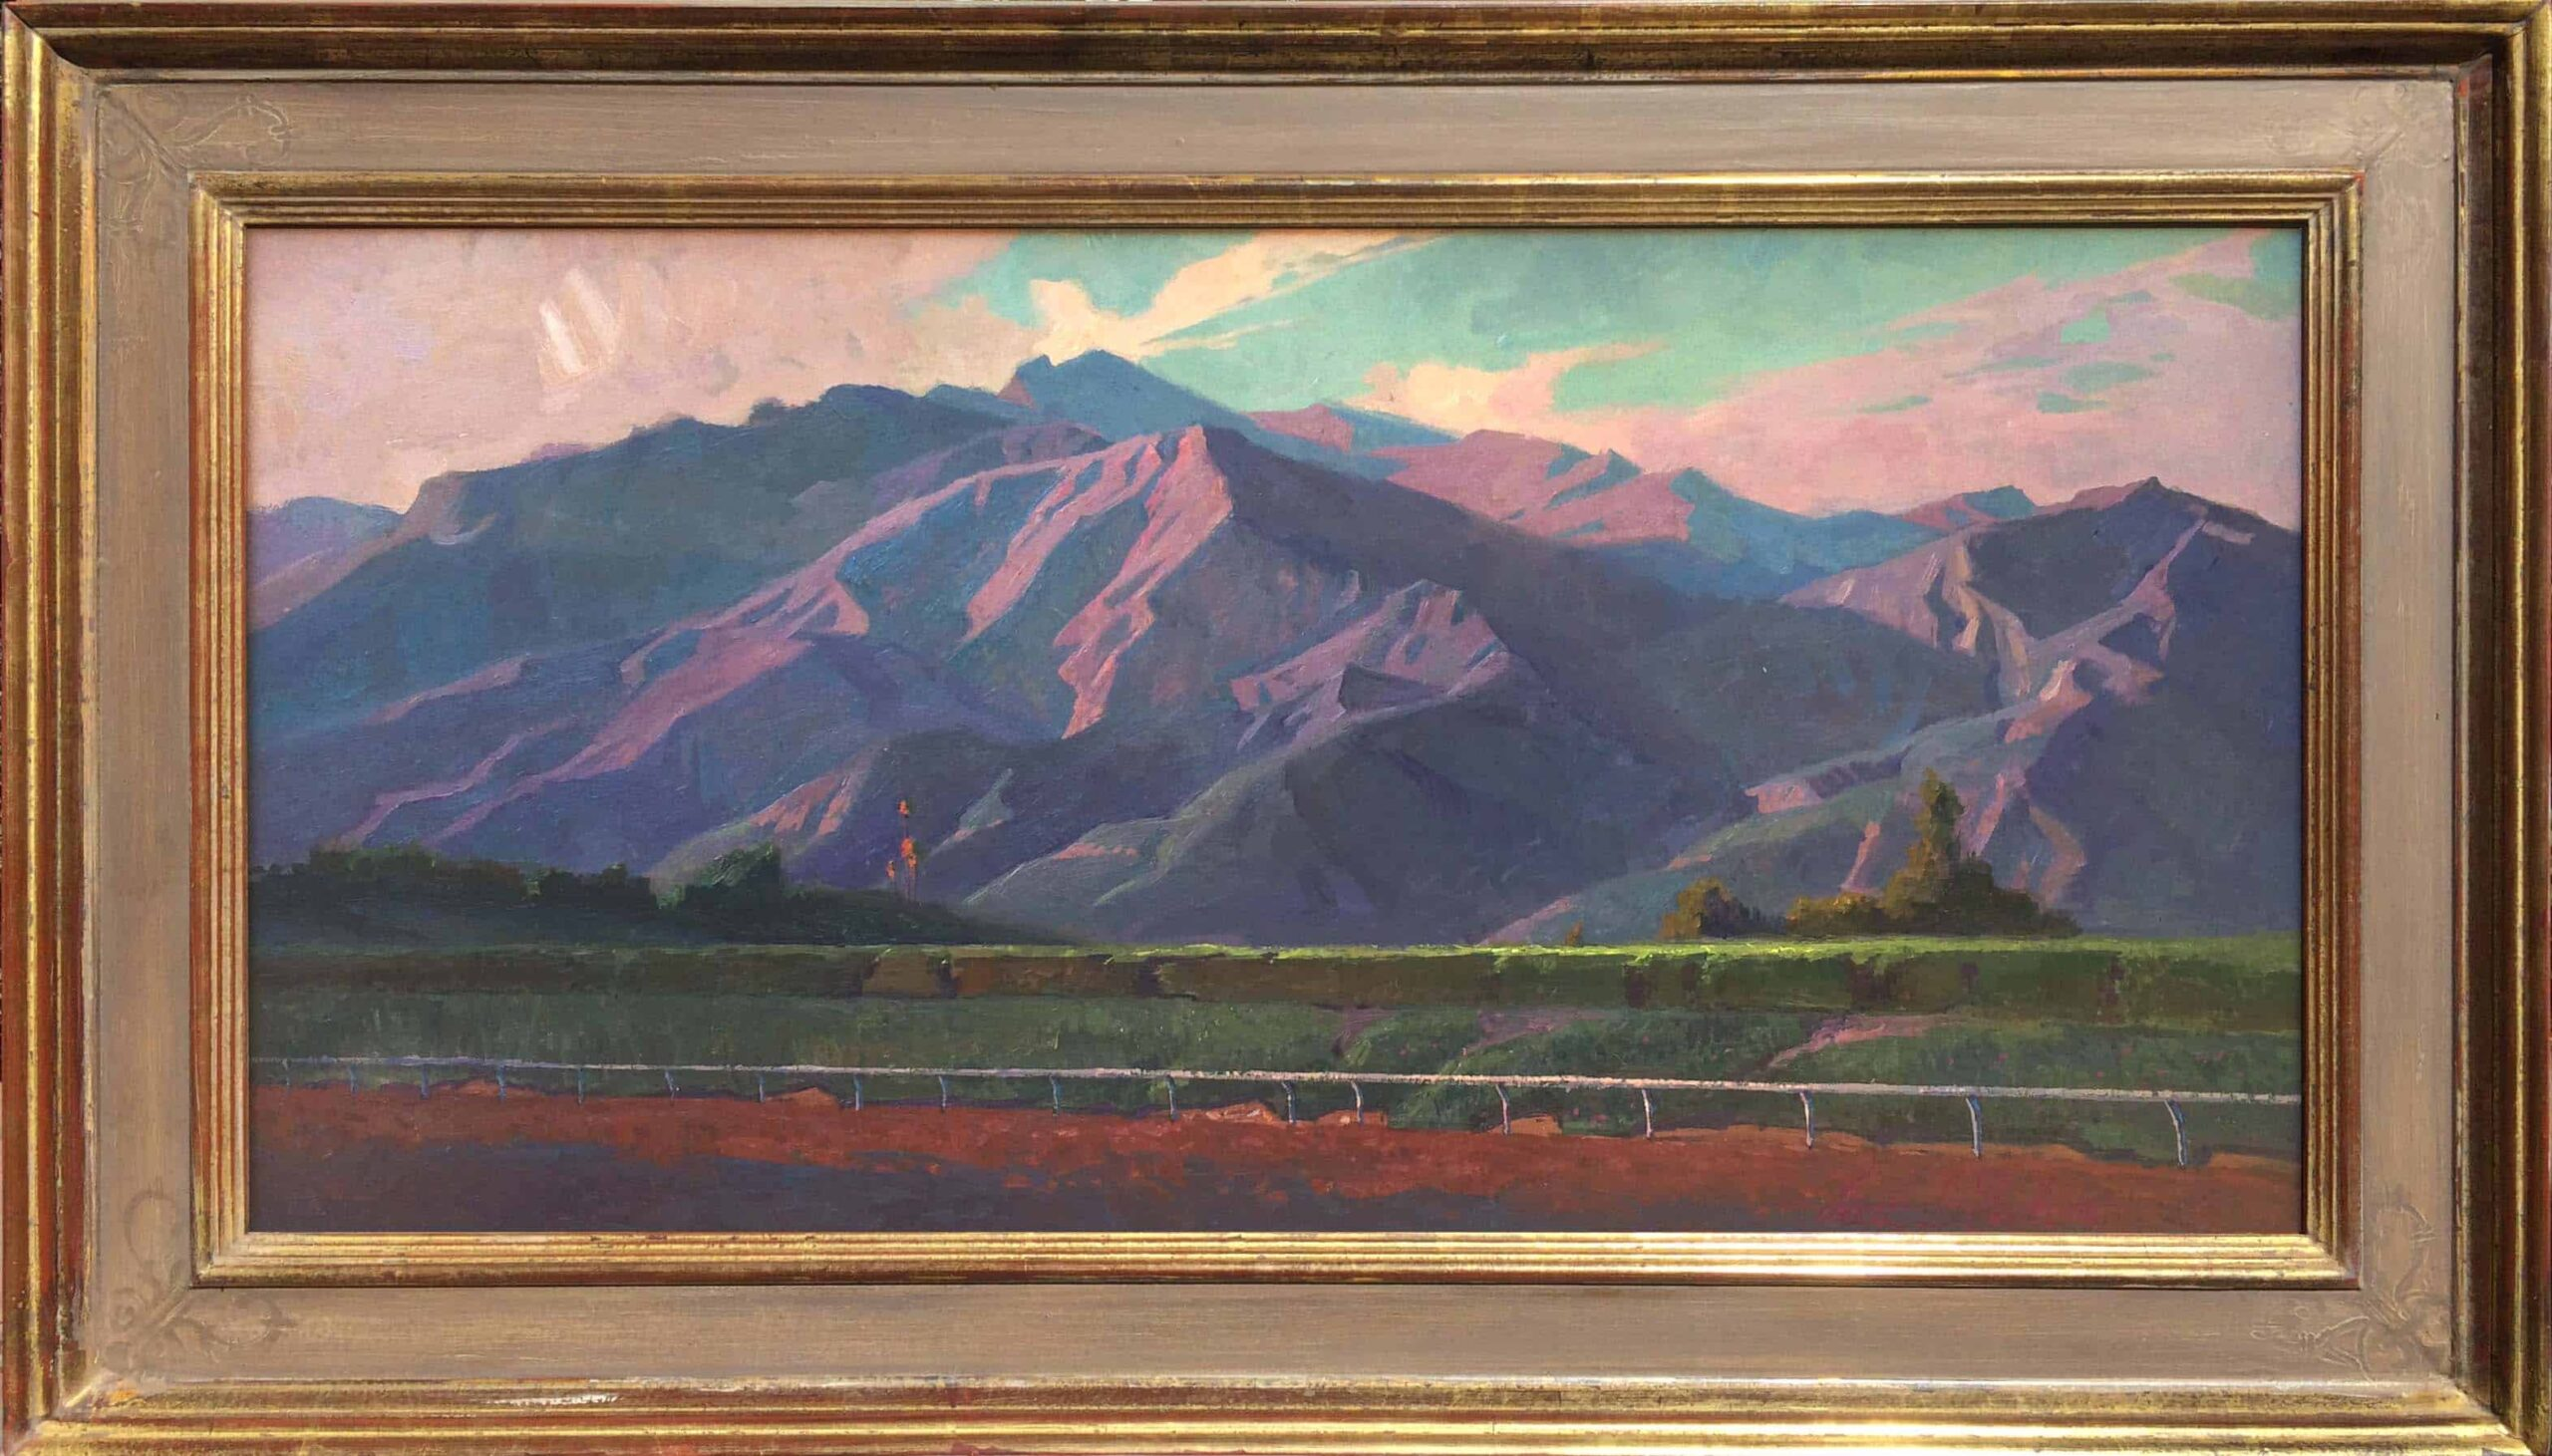 """American Legacy Fine Arts presents """"Morning Ride"""" a painting by Alexey Steele."""